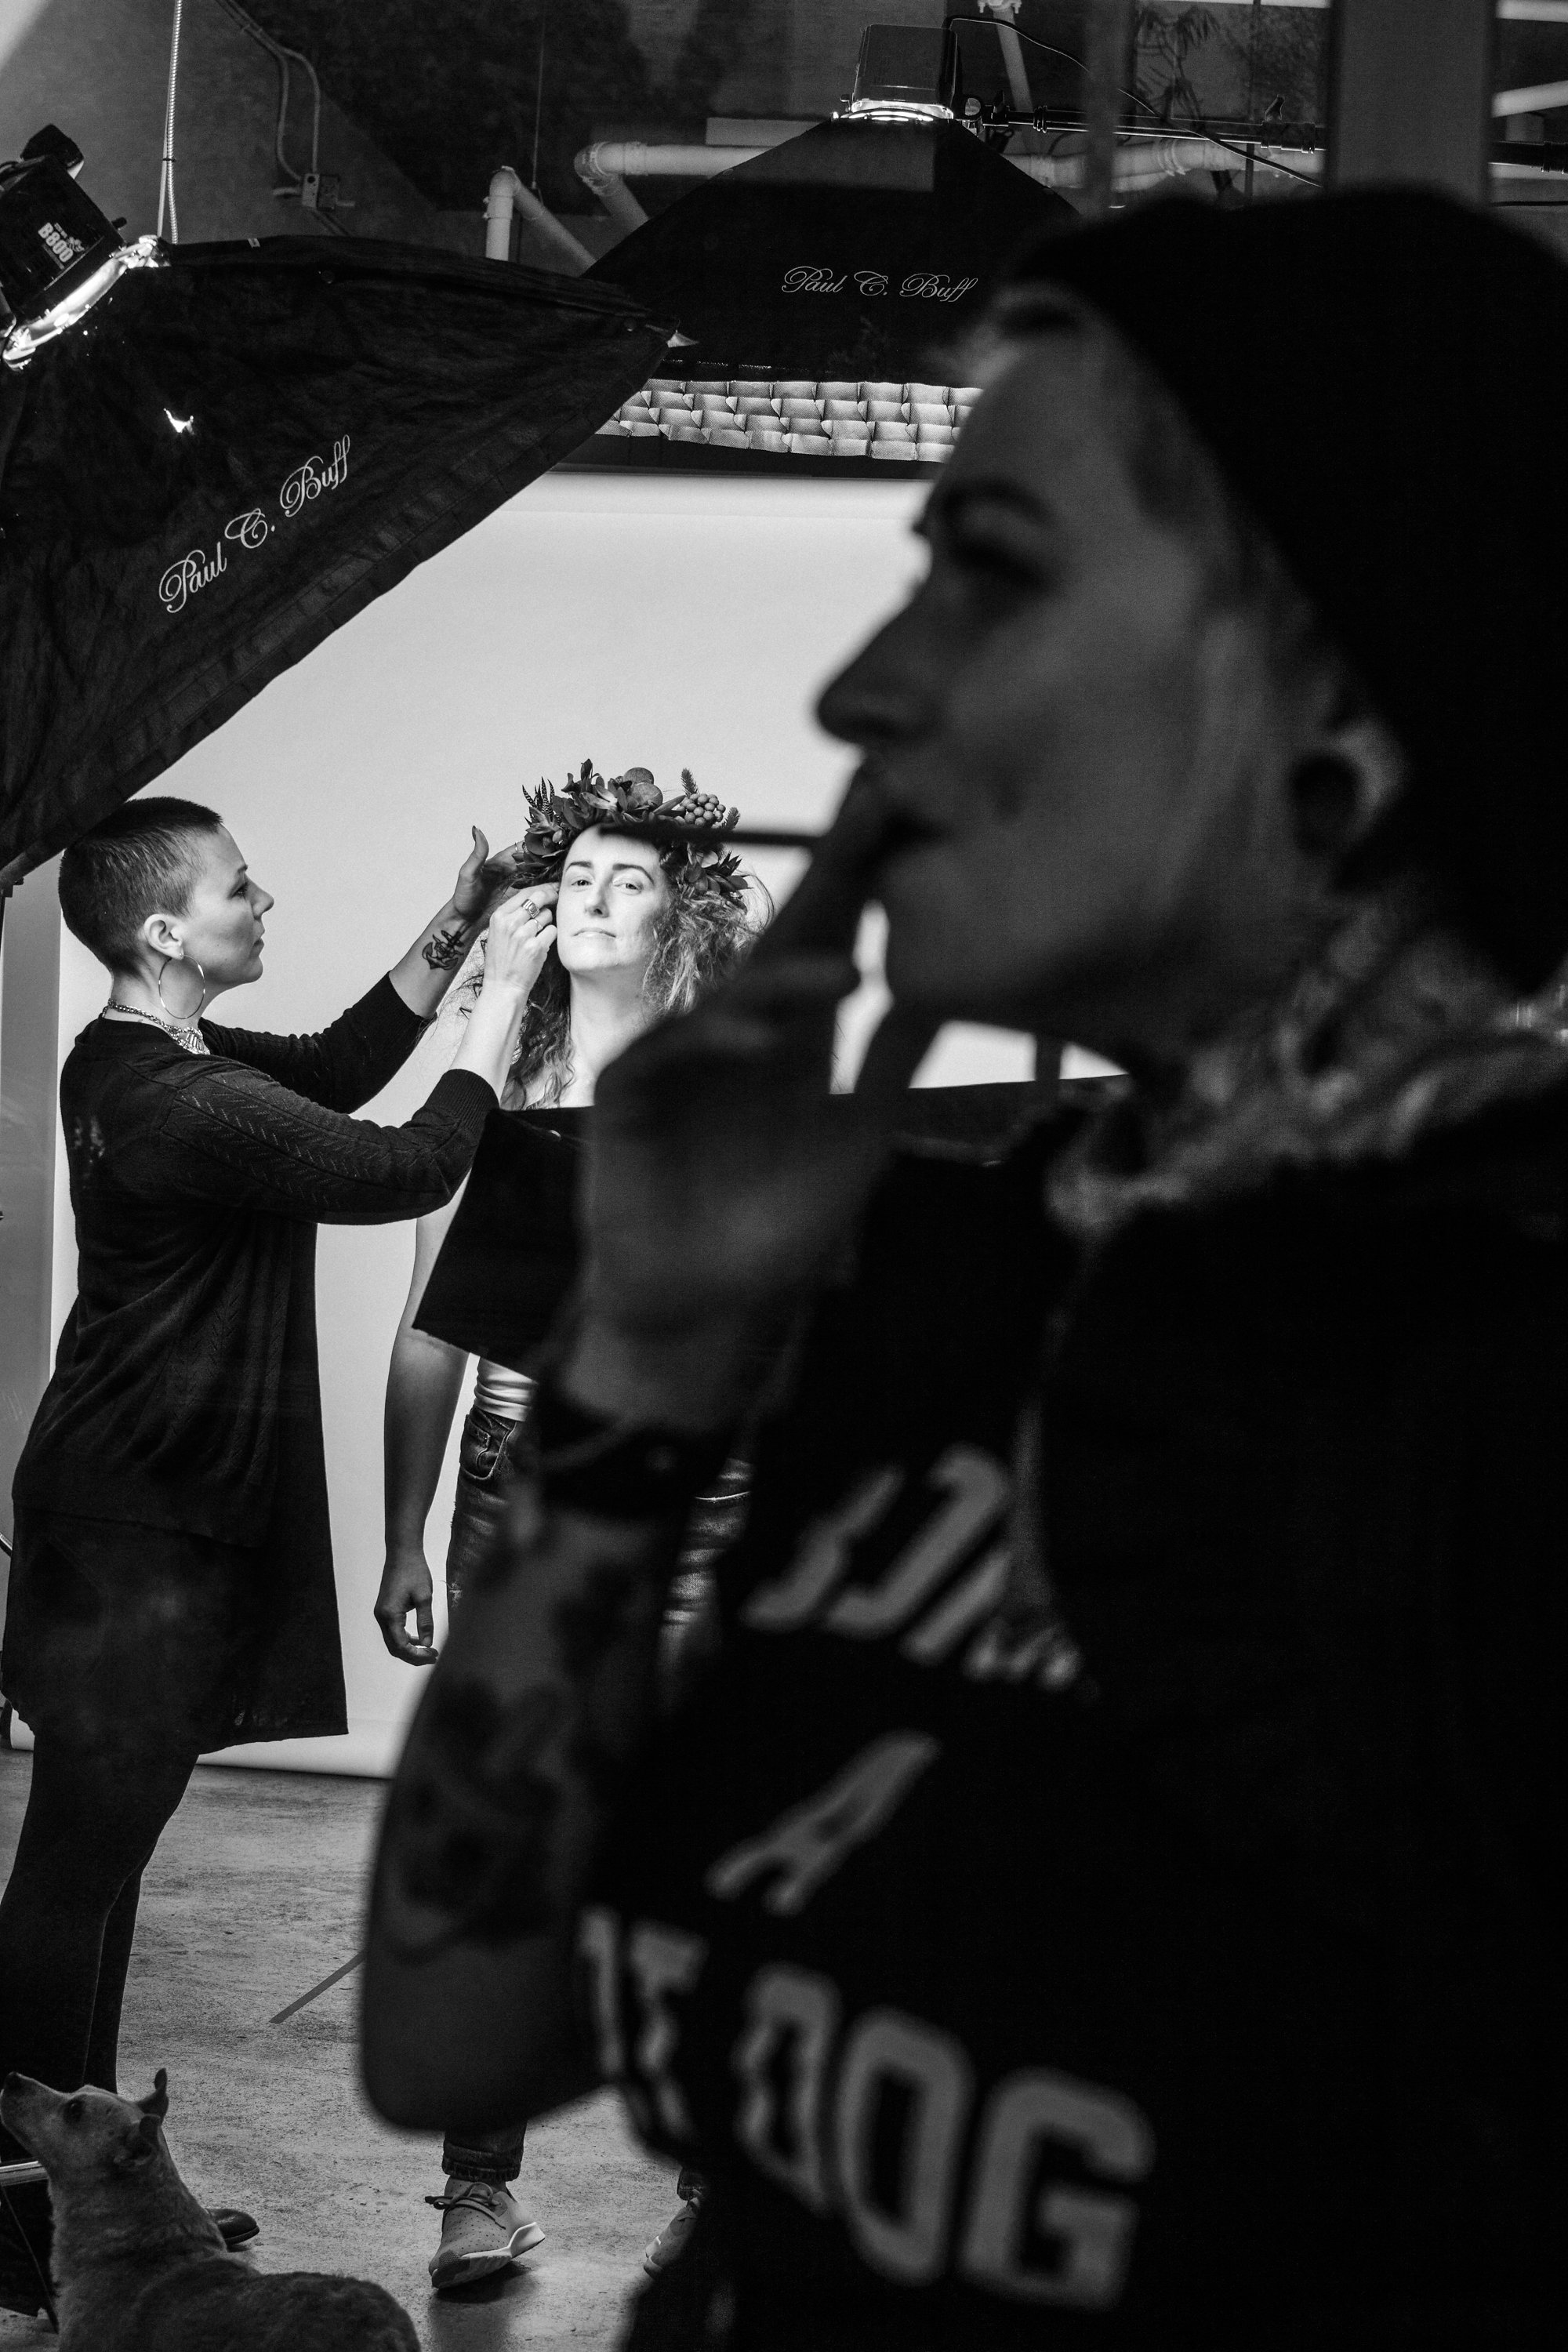 BTS shot from outside the salon. Bex Pfeifer in foreground. Myself and model in background.